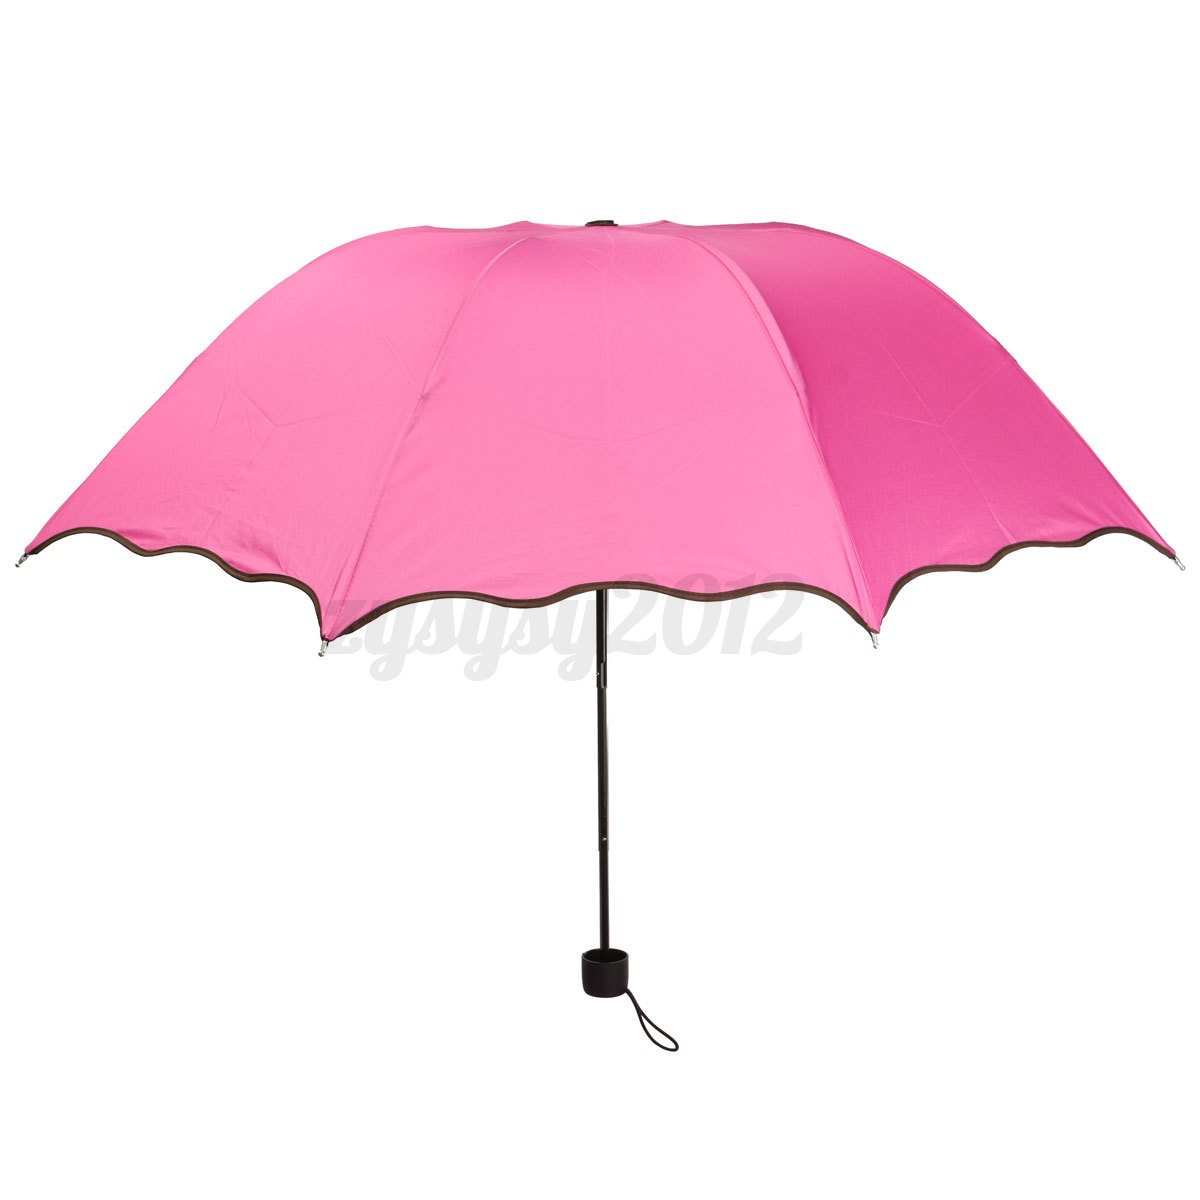 anti uv women flouncing dome parasol foldable sun rain color changing umbrella ebay. Black Bedroom Furniture Sets. Home Design Ideas